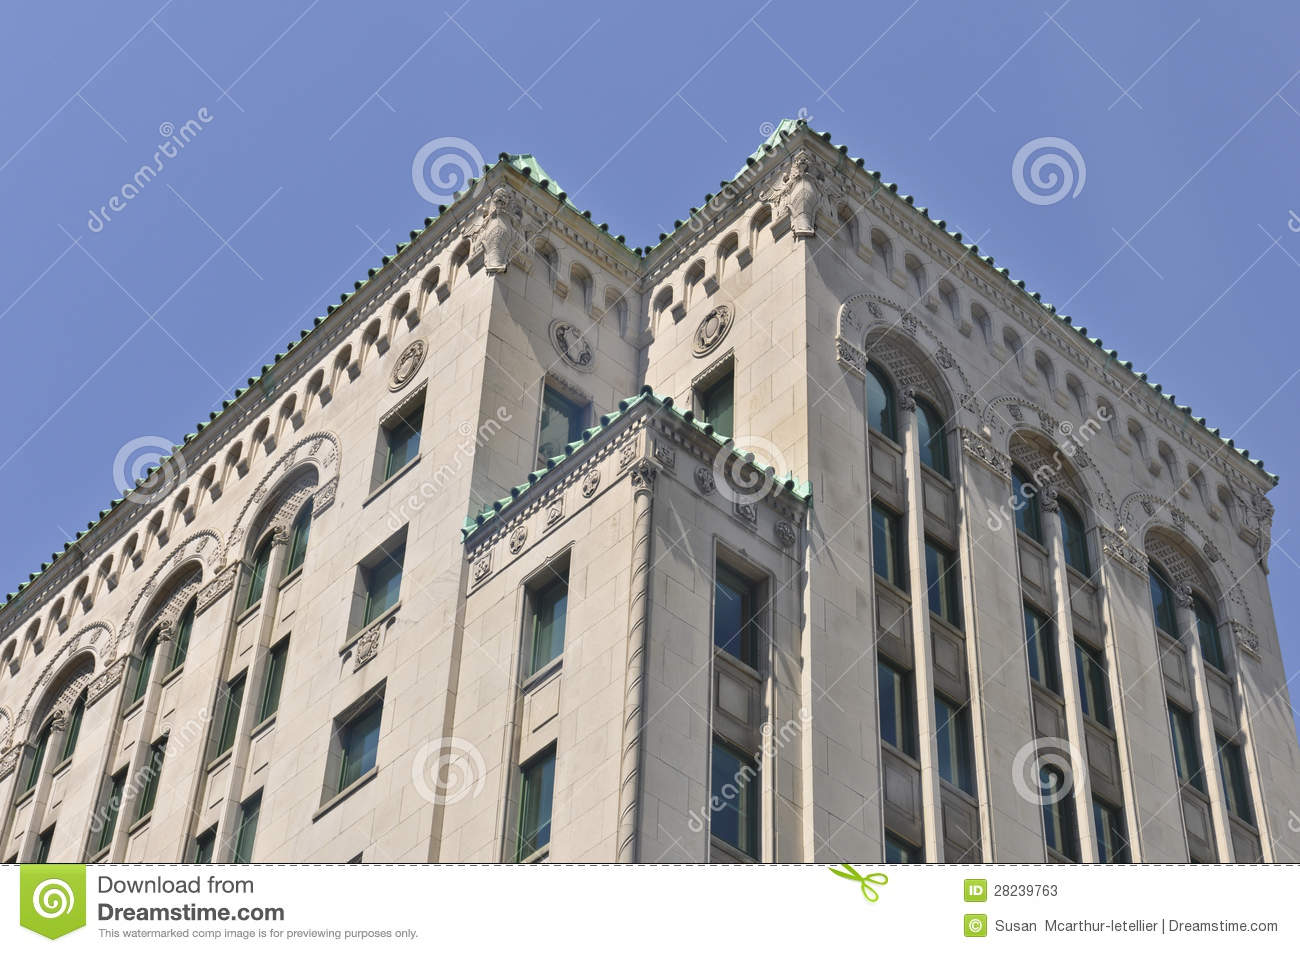 Montreal building with lion stone carvings stock photos